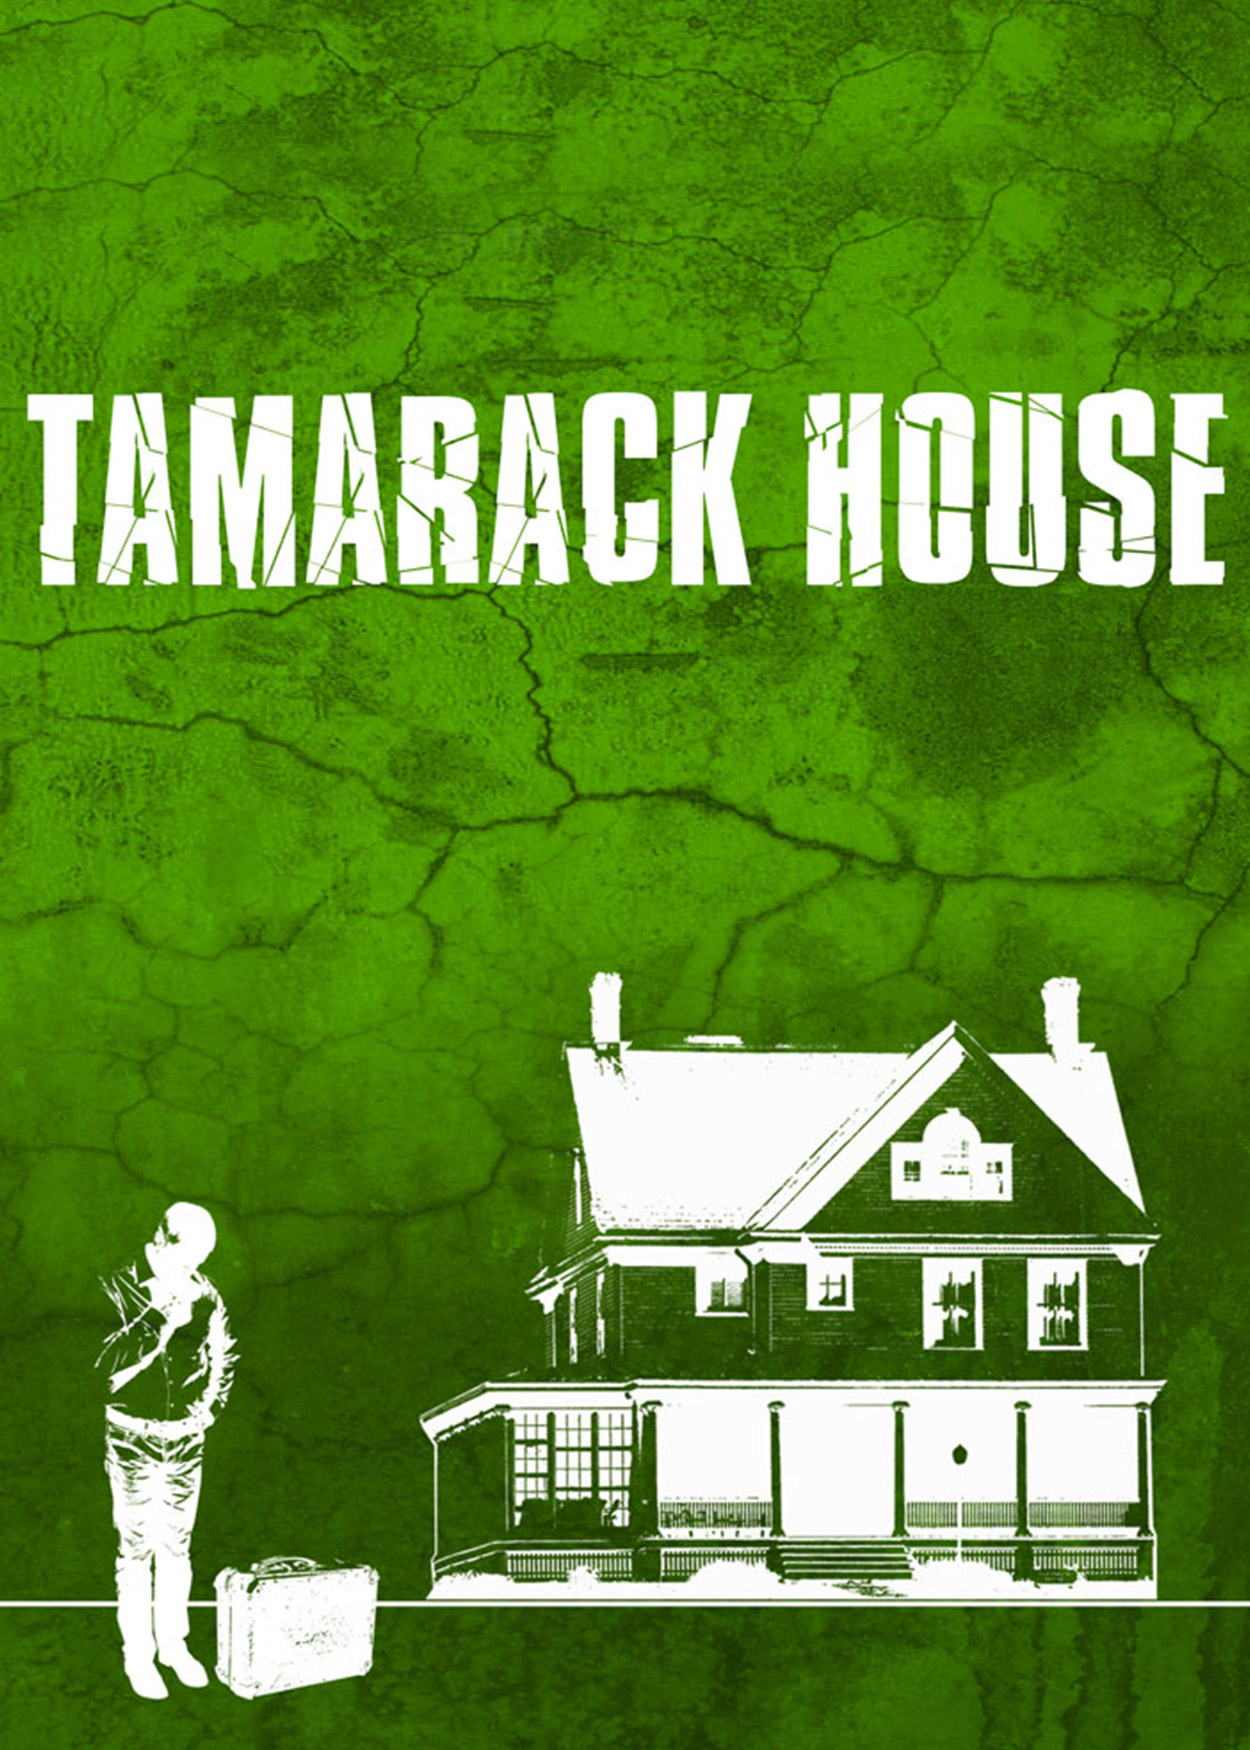 """Artwork: Man with suitcase and large house against green background Title: """"Tamarack House"""""""